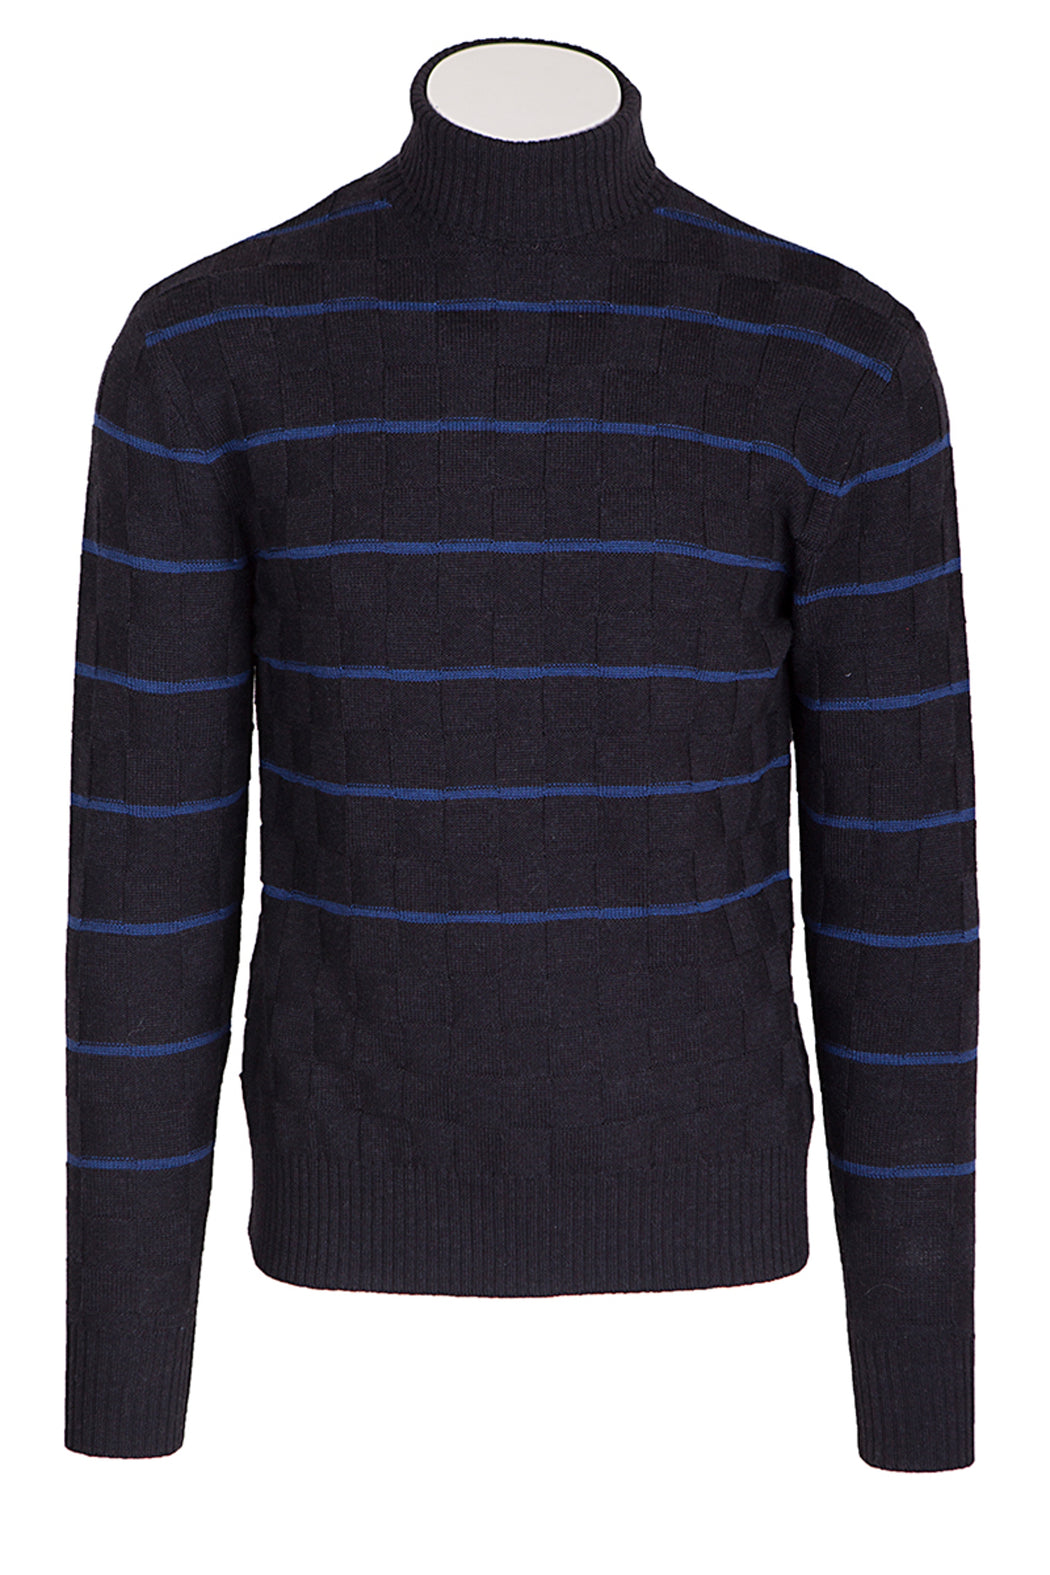 GATSBY Pullover navy/blue stripes